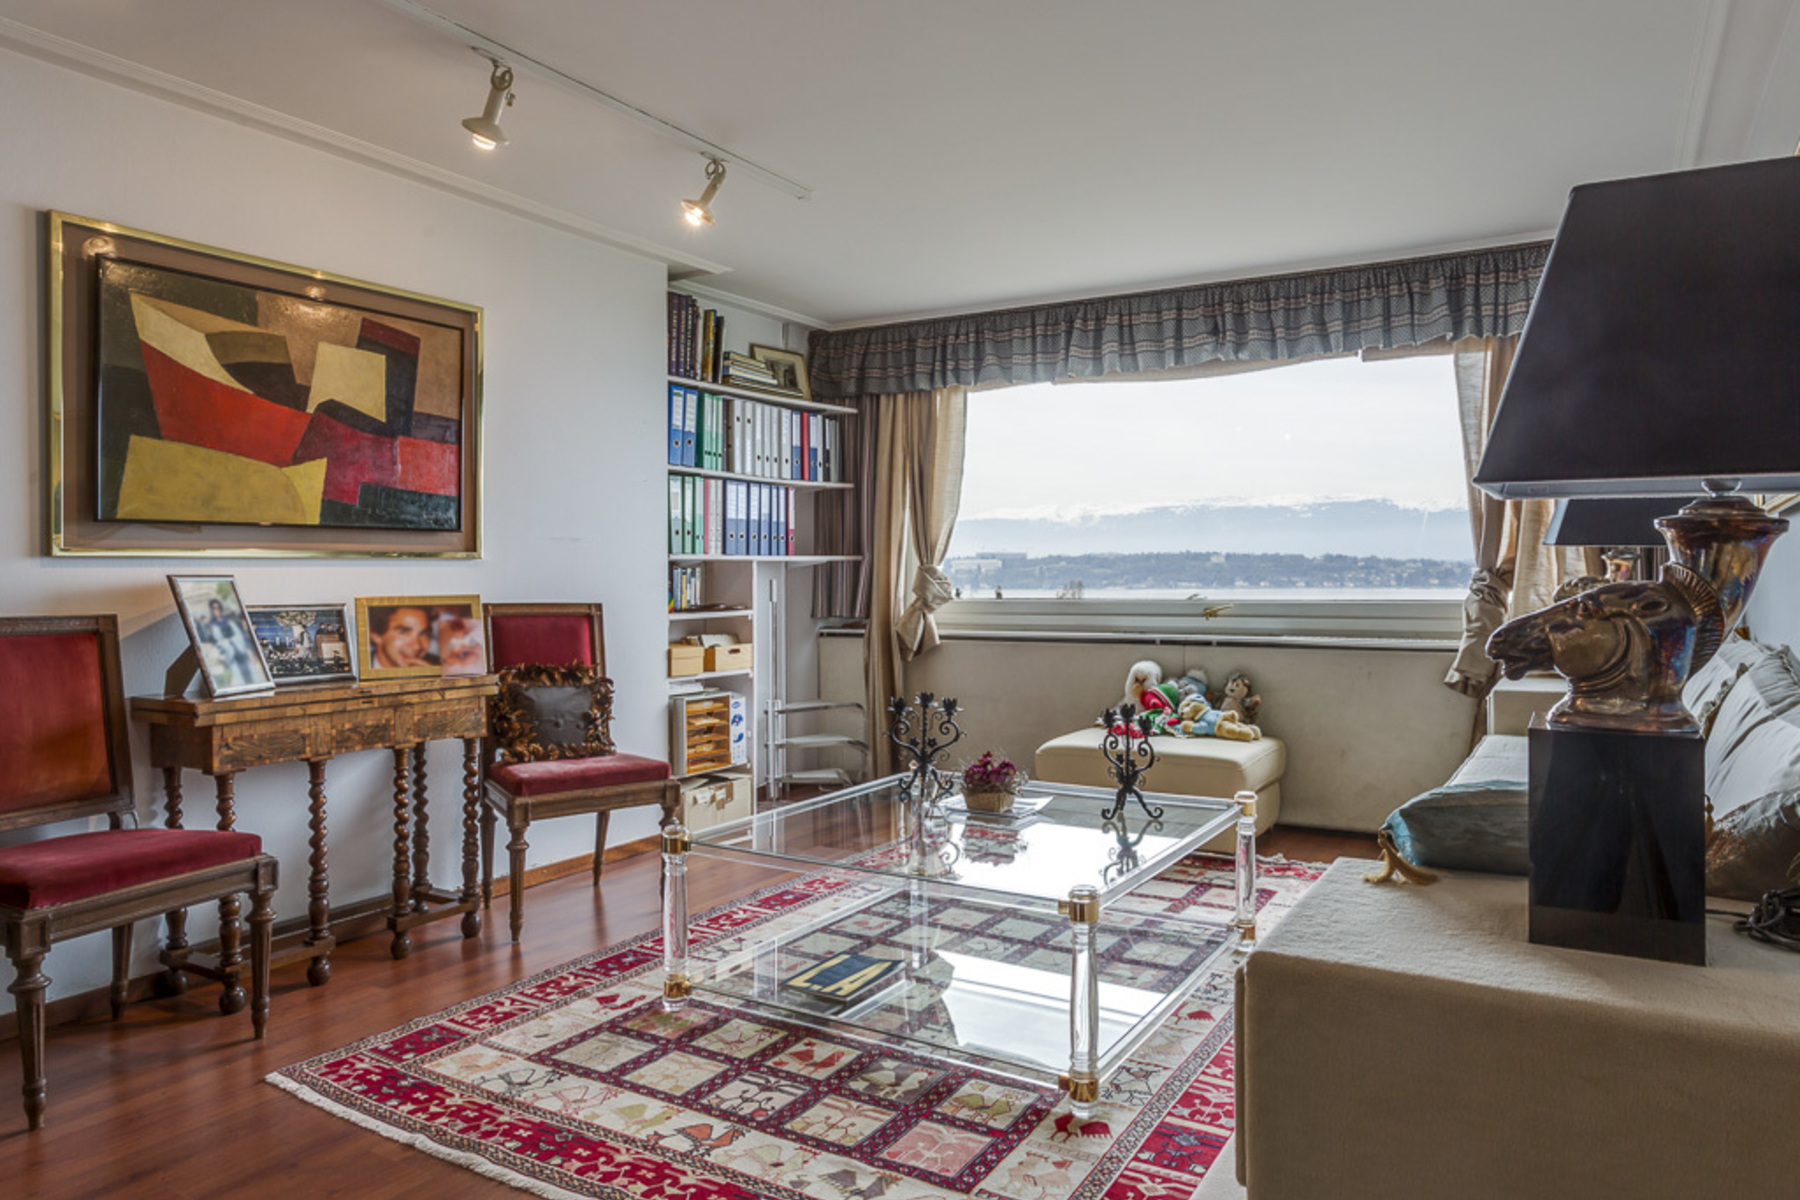 Property for Sale at Unimpeded Lake View Cologny Cologny, Geneva 1223 Switzerland